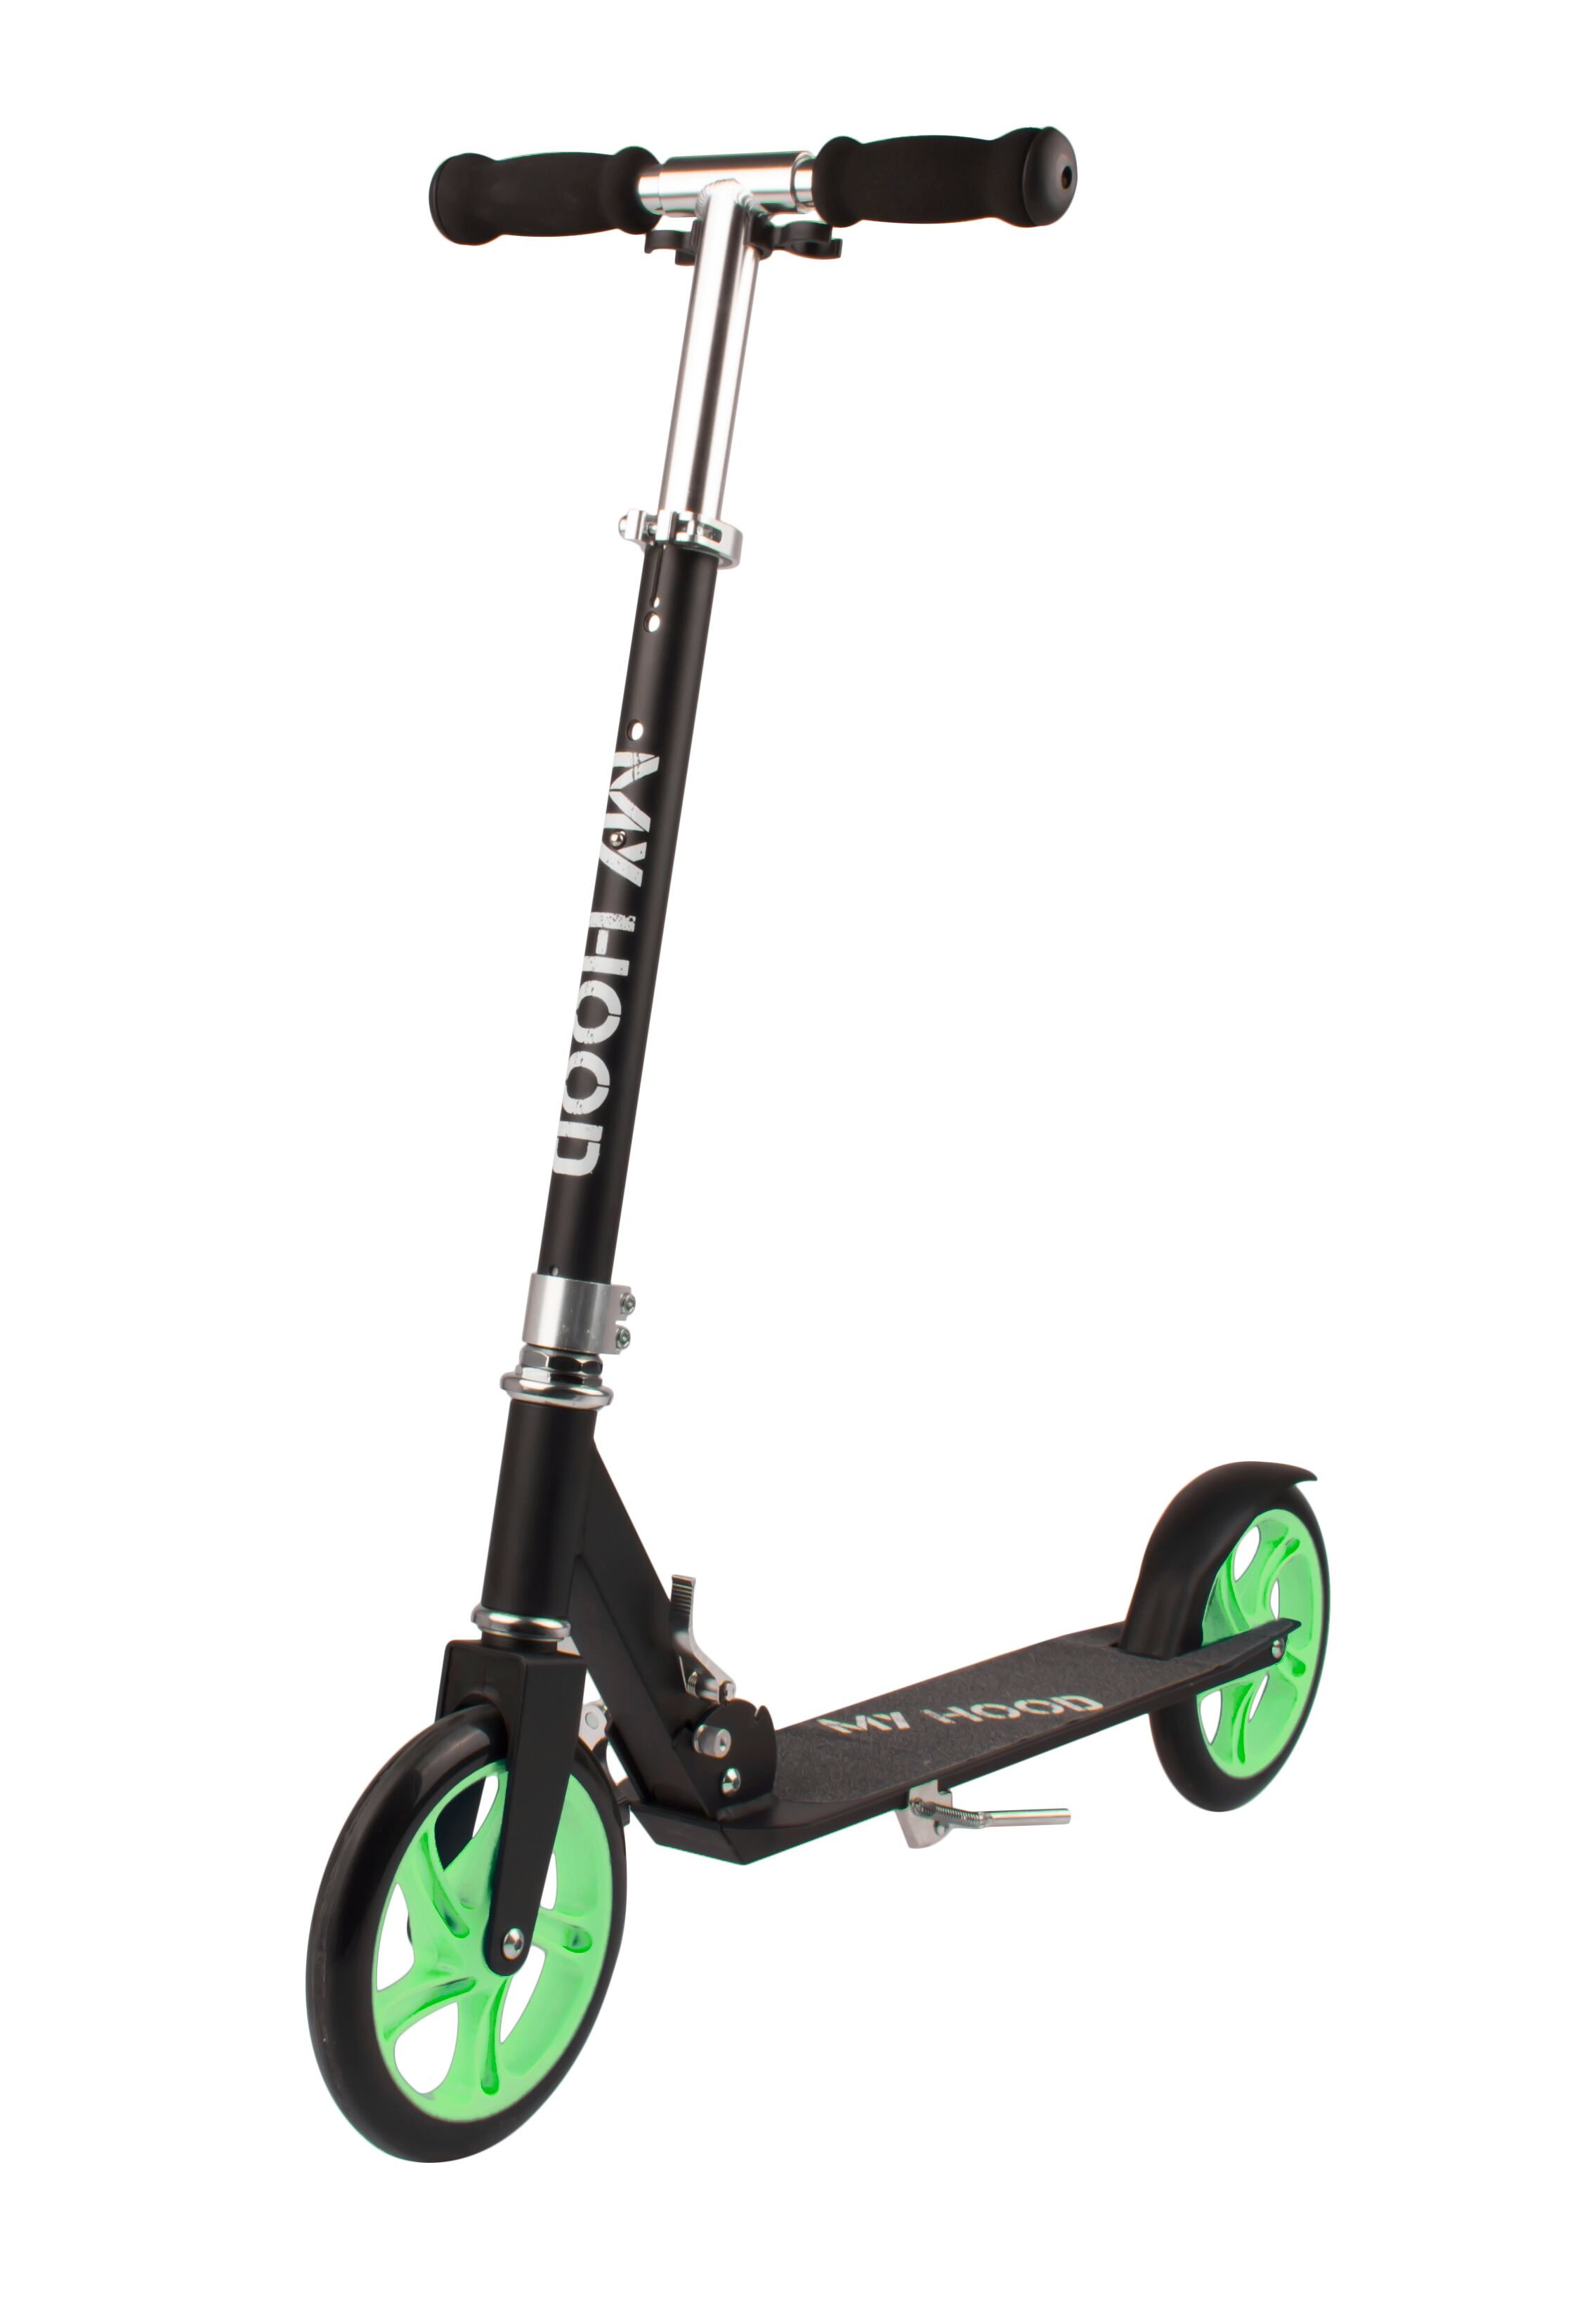 My Hood - Scooter 200 - Green (505153)